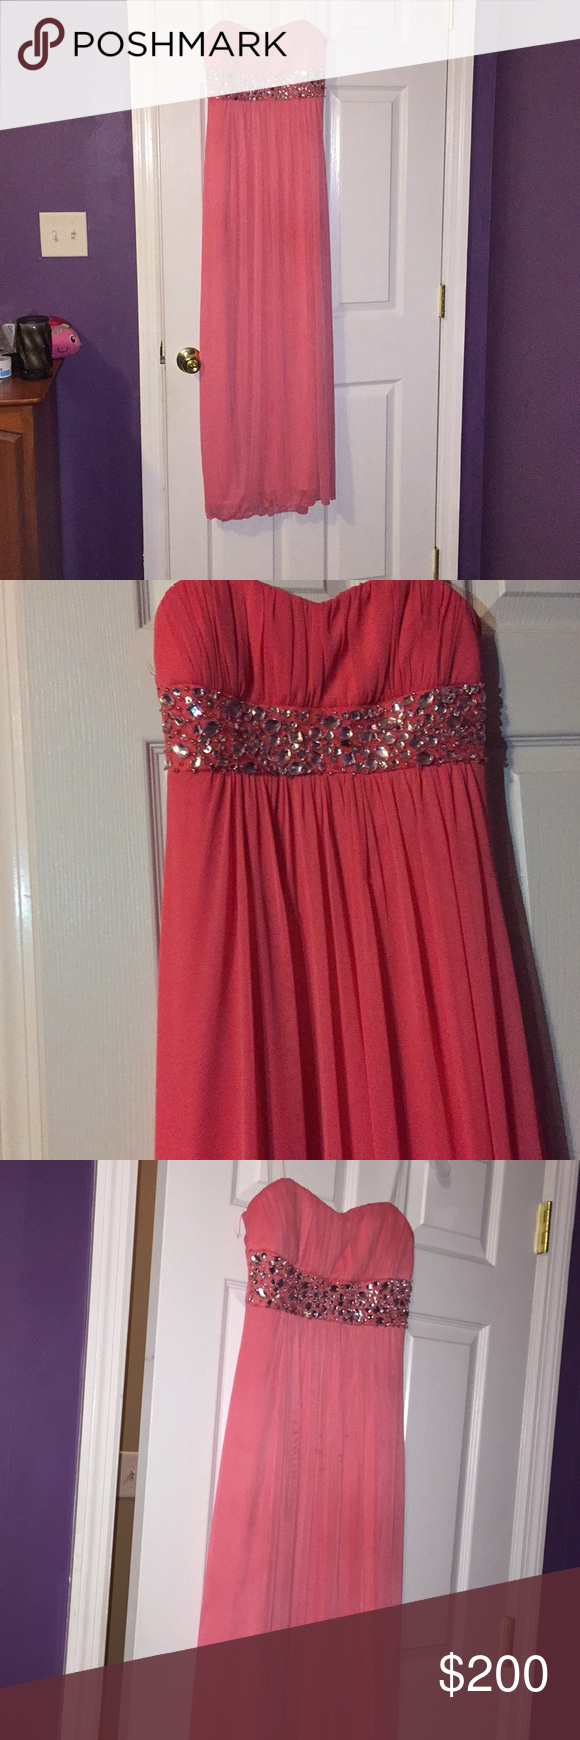 Prom dress for sell worn once prom dress prom and customer support